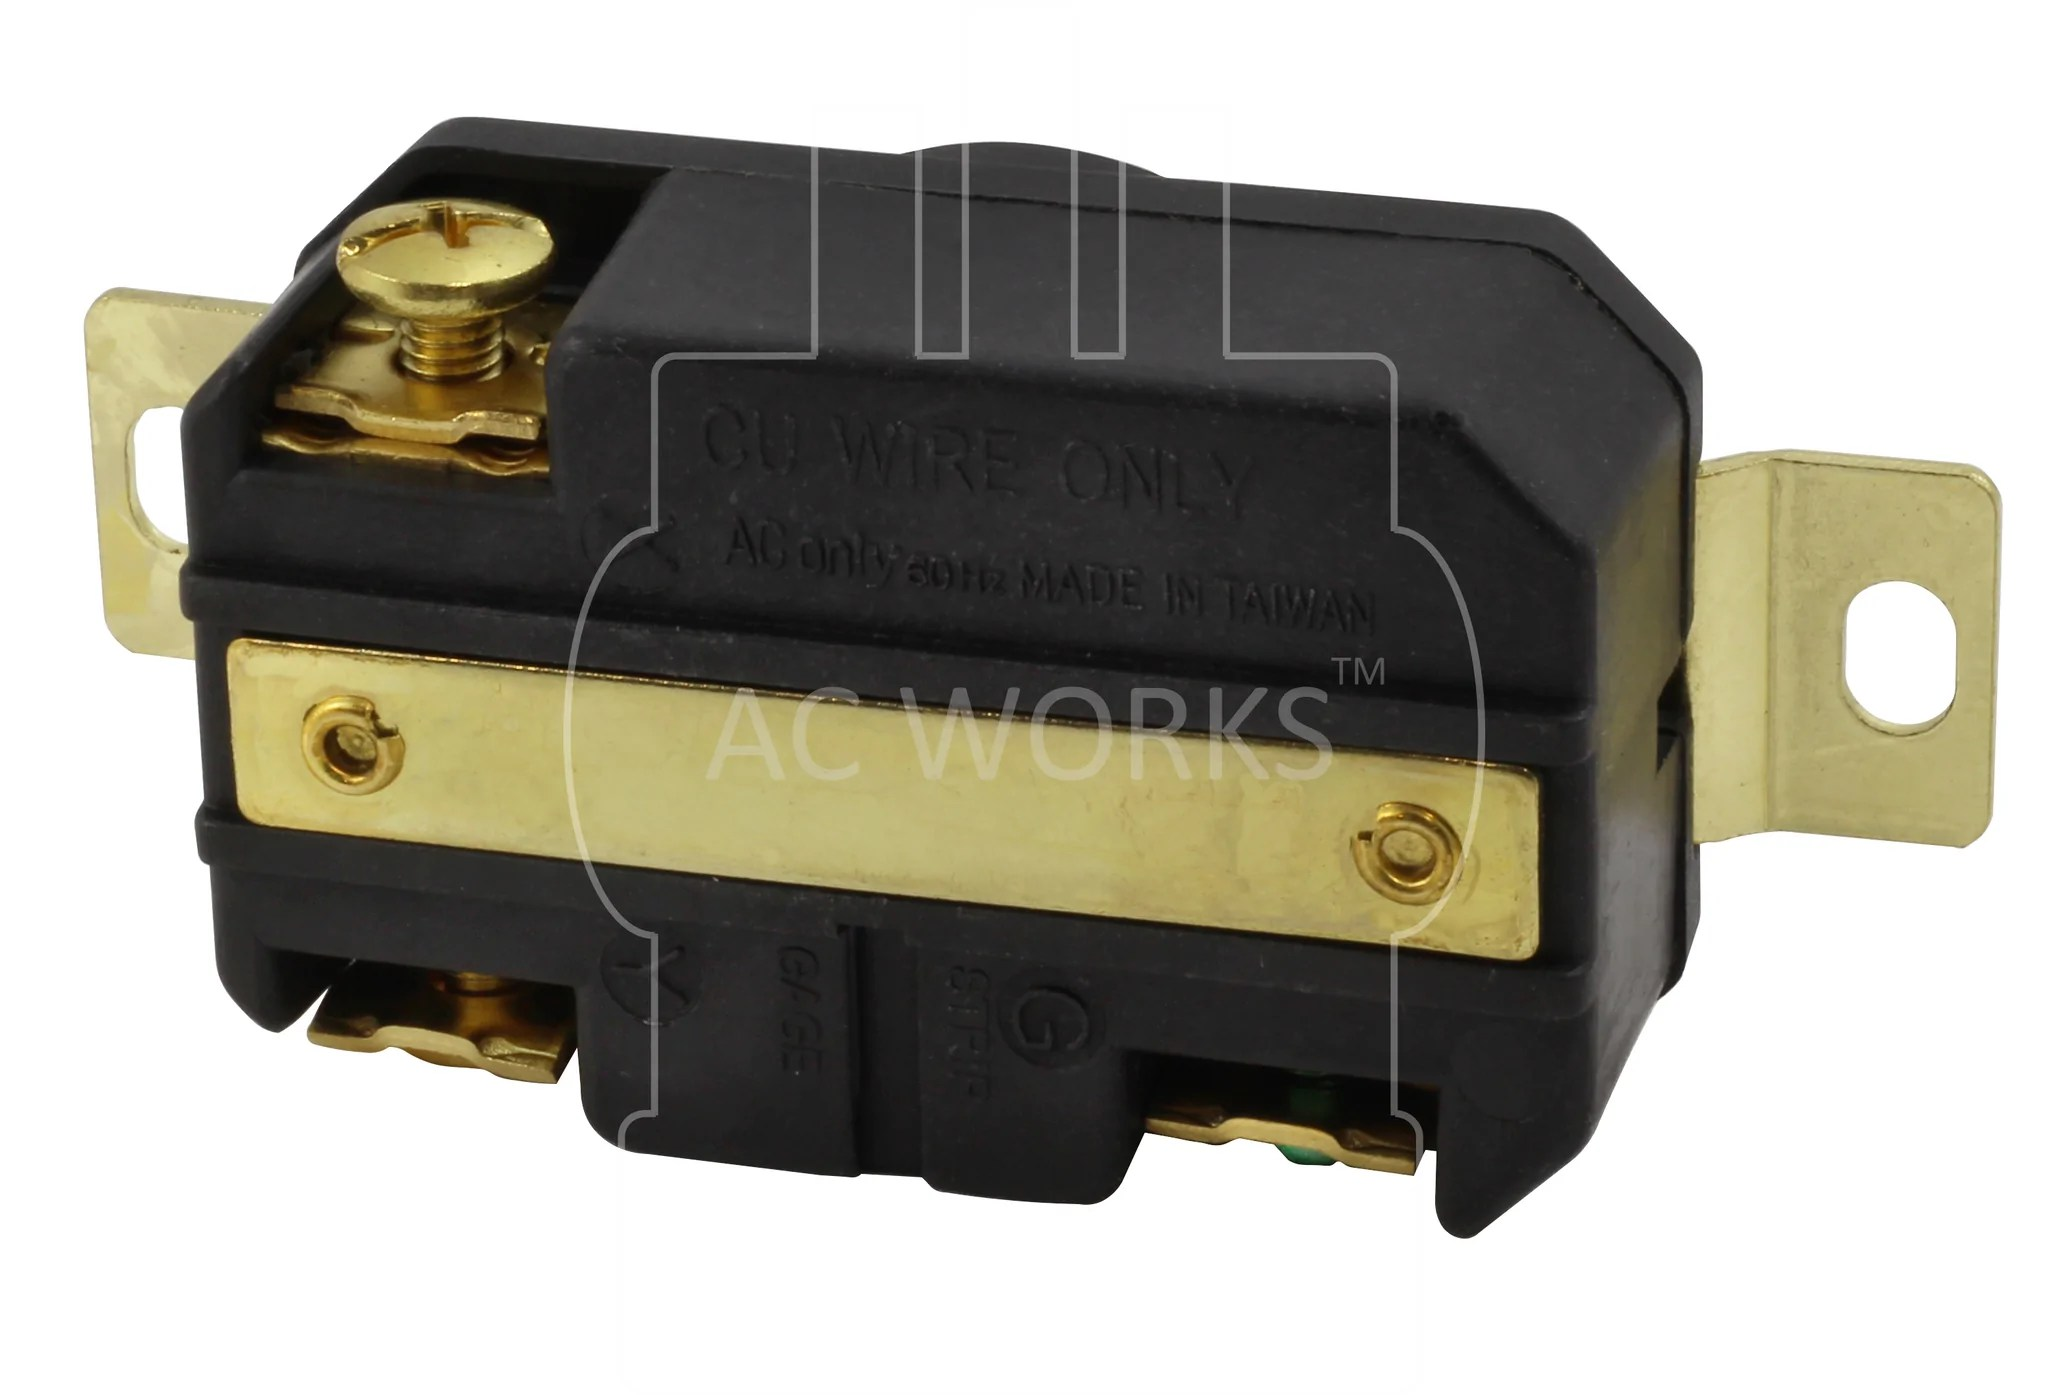 medium resolution of  fml620r ac works ac connectors flush mounting locking receptacle